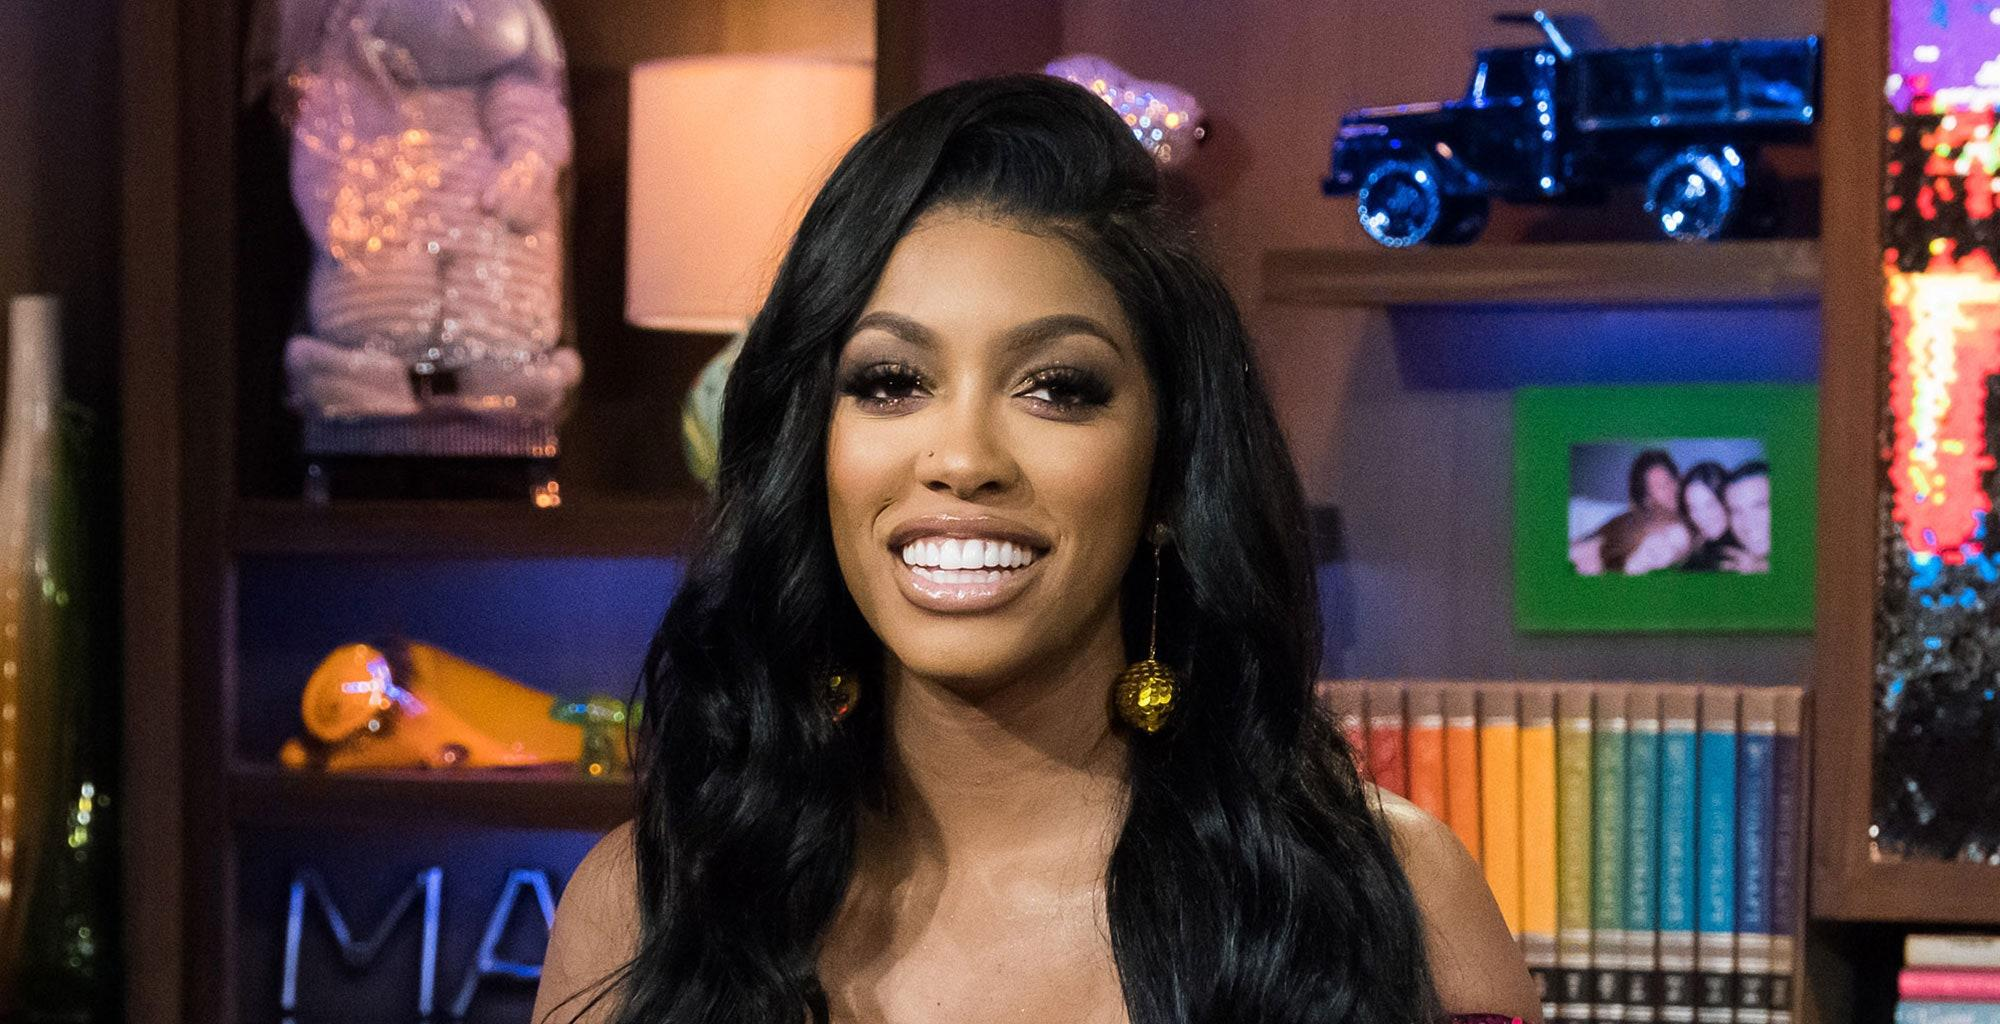 Porsha Williams Praises Her Family - See The Photo That Impressed Fans